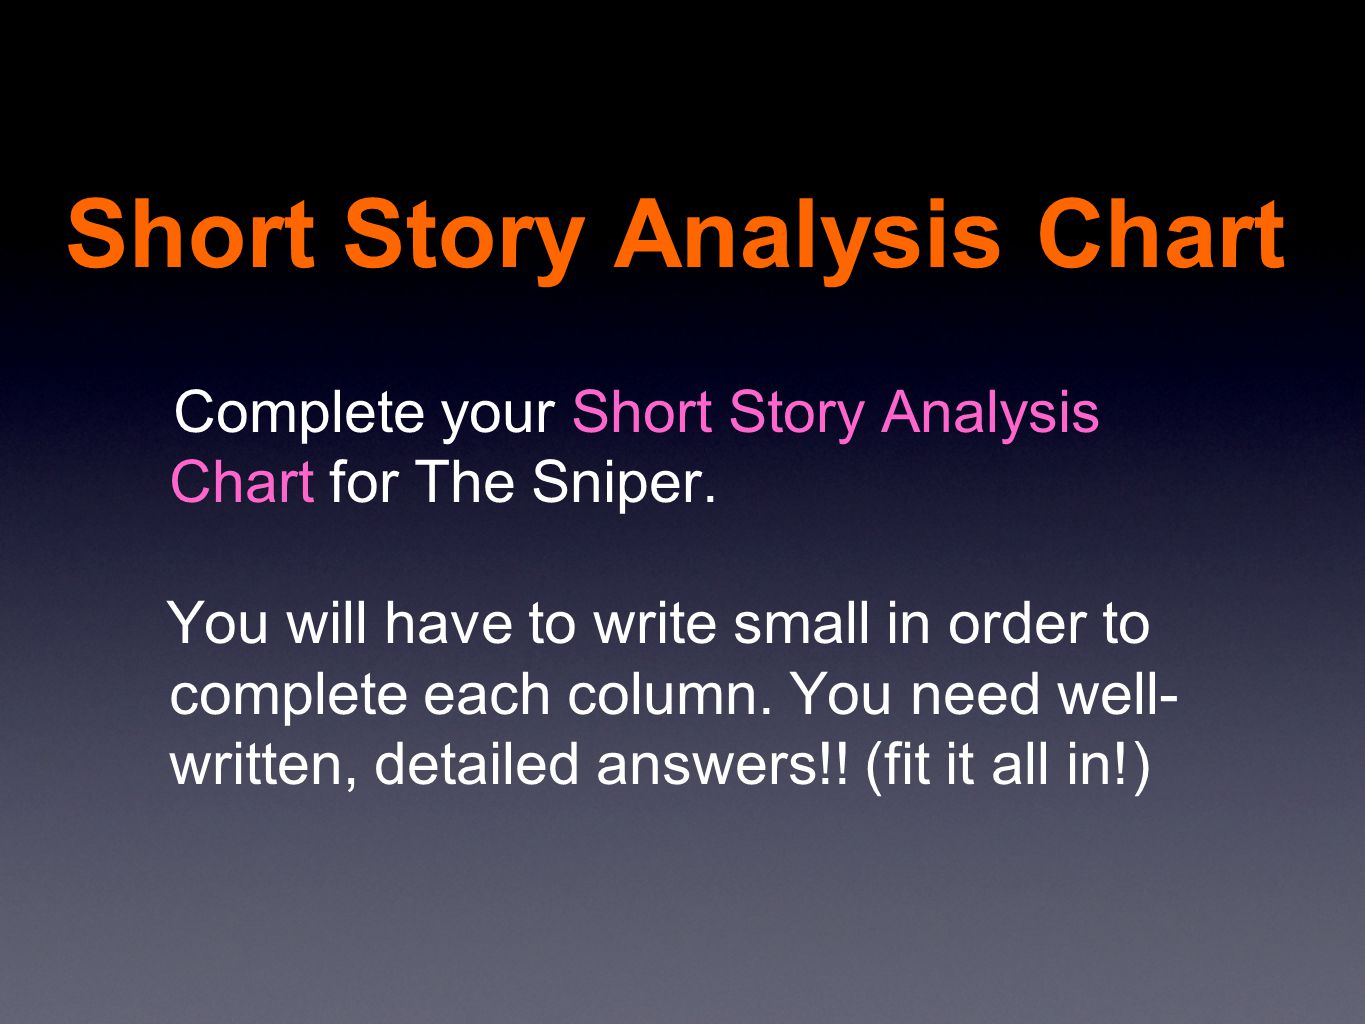 a short story the sniper by liam o flaherty ppt video online  short story analysis chart